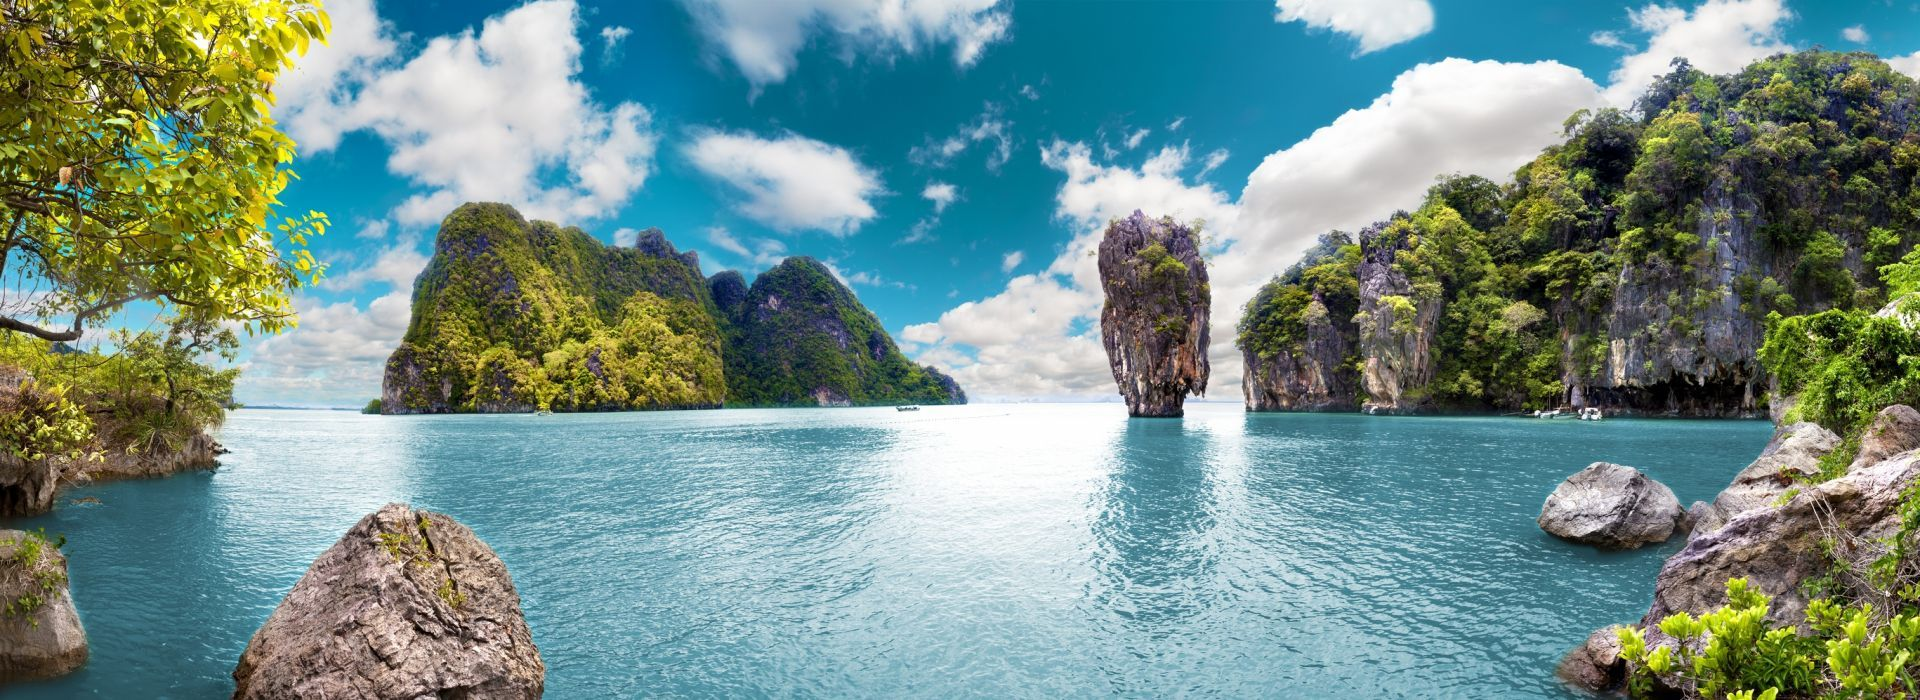 Local boat rides Tours in Thailand